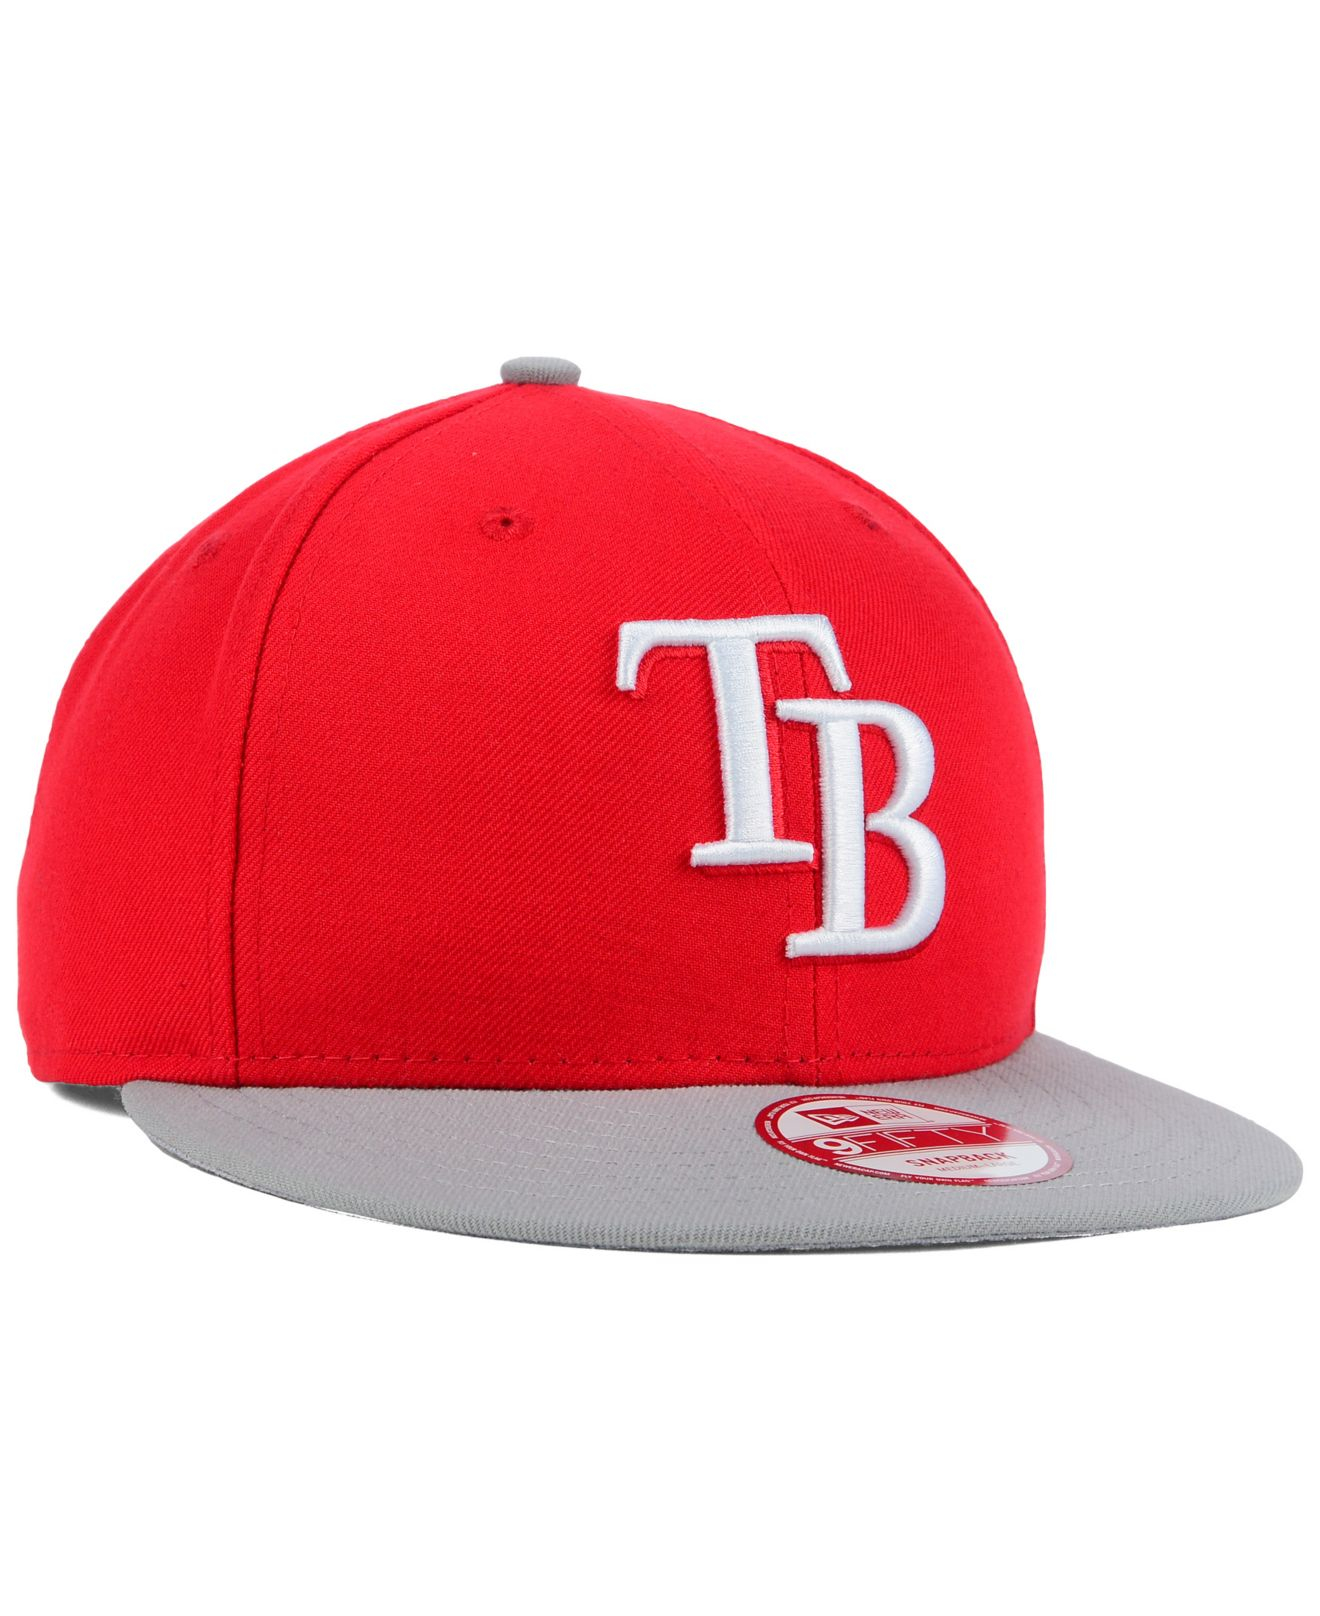 huge discount 12791 59d04 Lyst - Ktz Tampa Bay Rays 2-tone Basic 9fifty Snapback Cap in Red ...